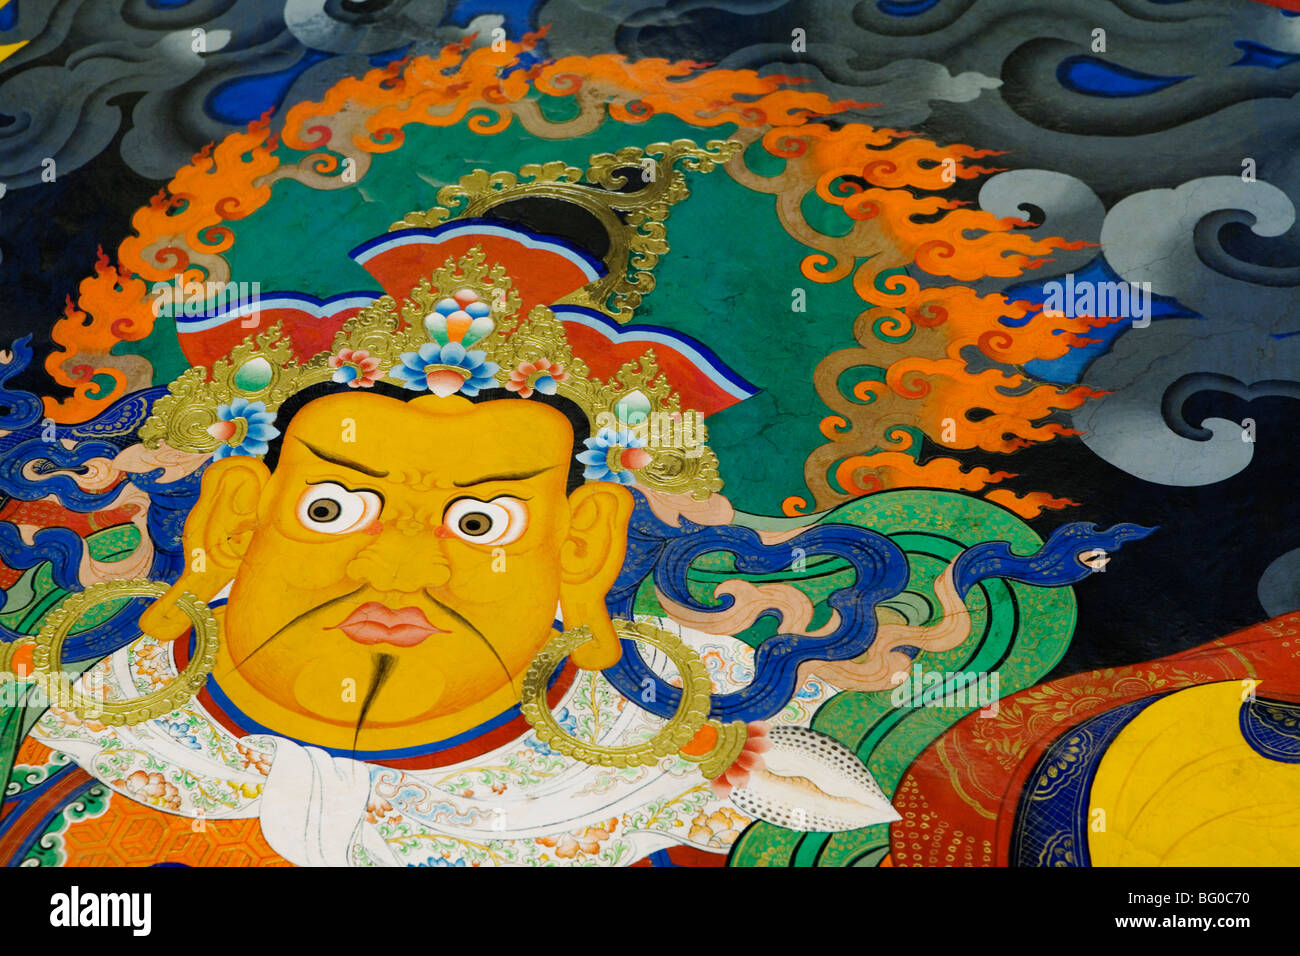 Guru Rinpoche Stock Photos & Guru Rinpoche Stock Images - Alamy